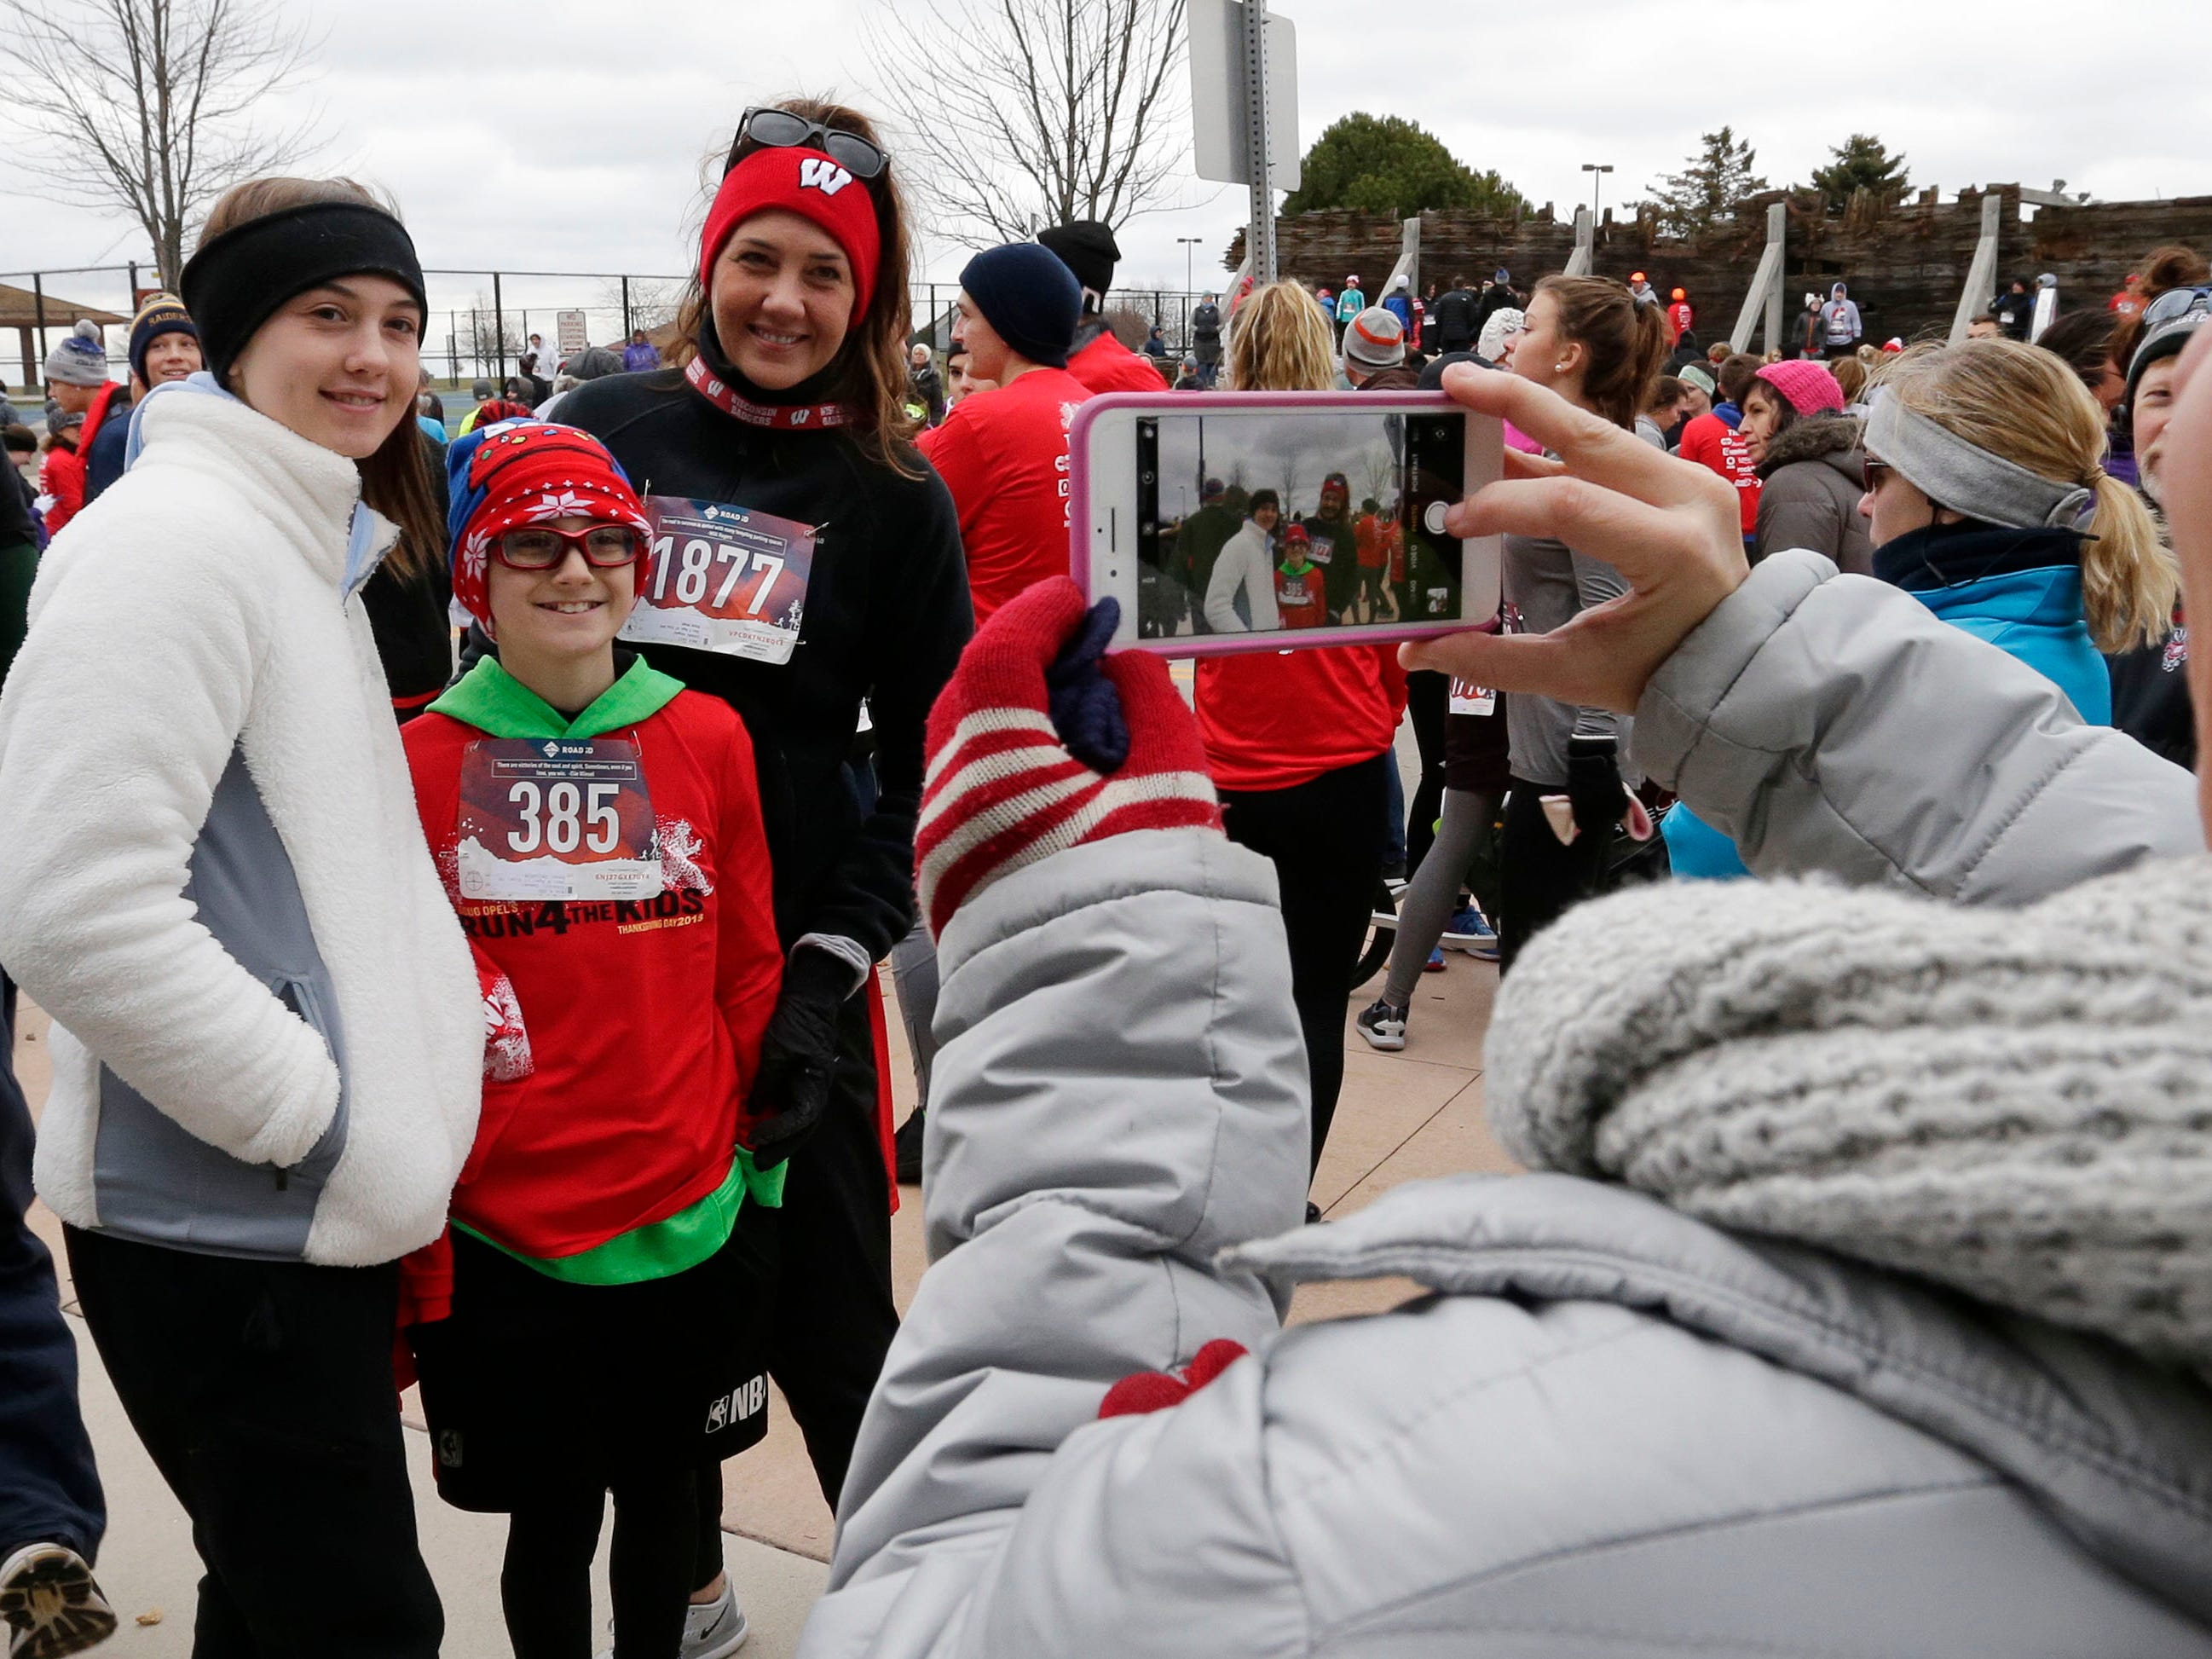 Sydney Scheibl, left, poses with her brother Sam, middle, and with Angela, right, before the Doug Opel Run for the Kids, Thursday, November 22, 2018, in Sheboygan, Wis.